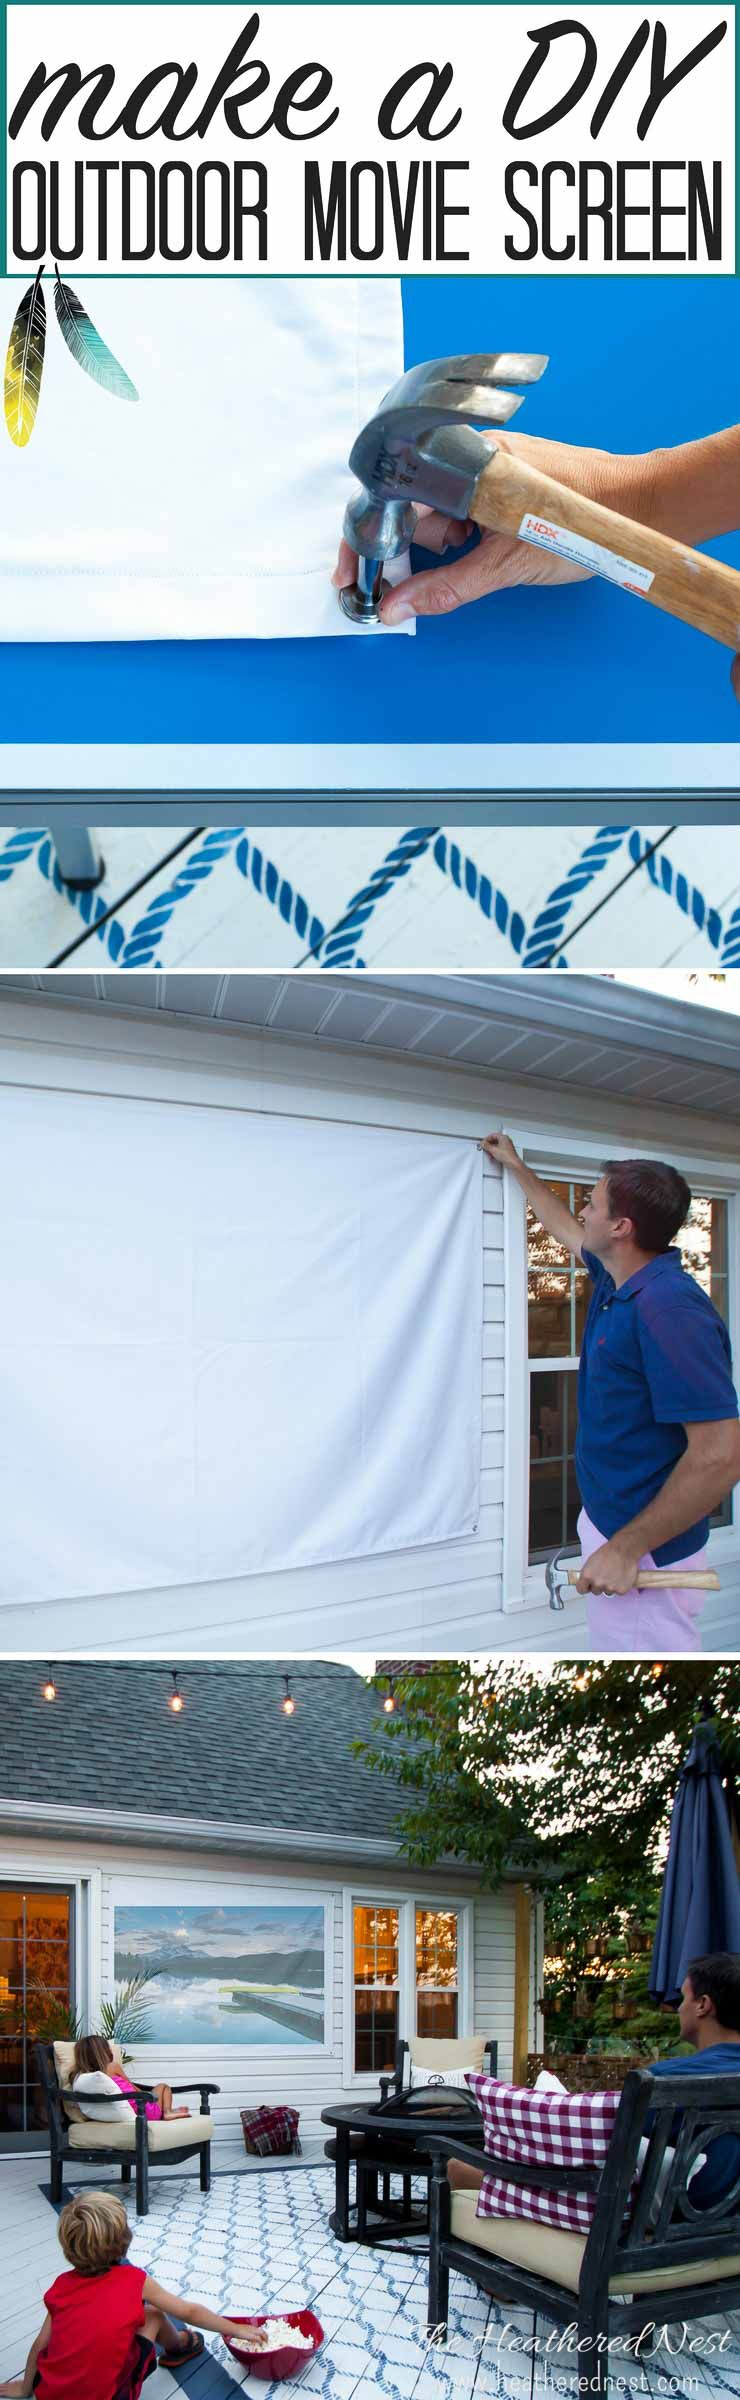 how to build an outdoor movie screen | outdoor movie screen, screens